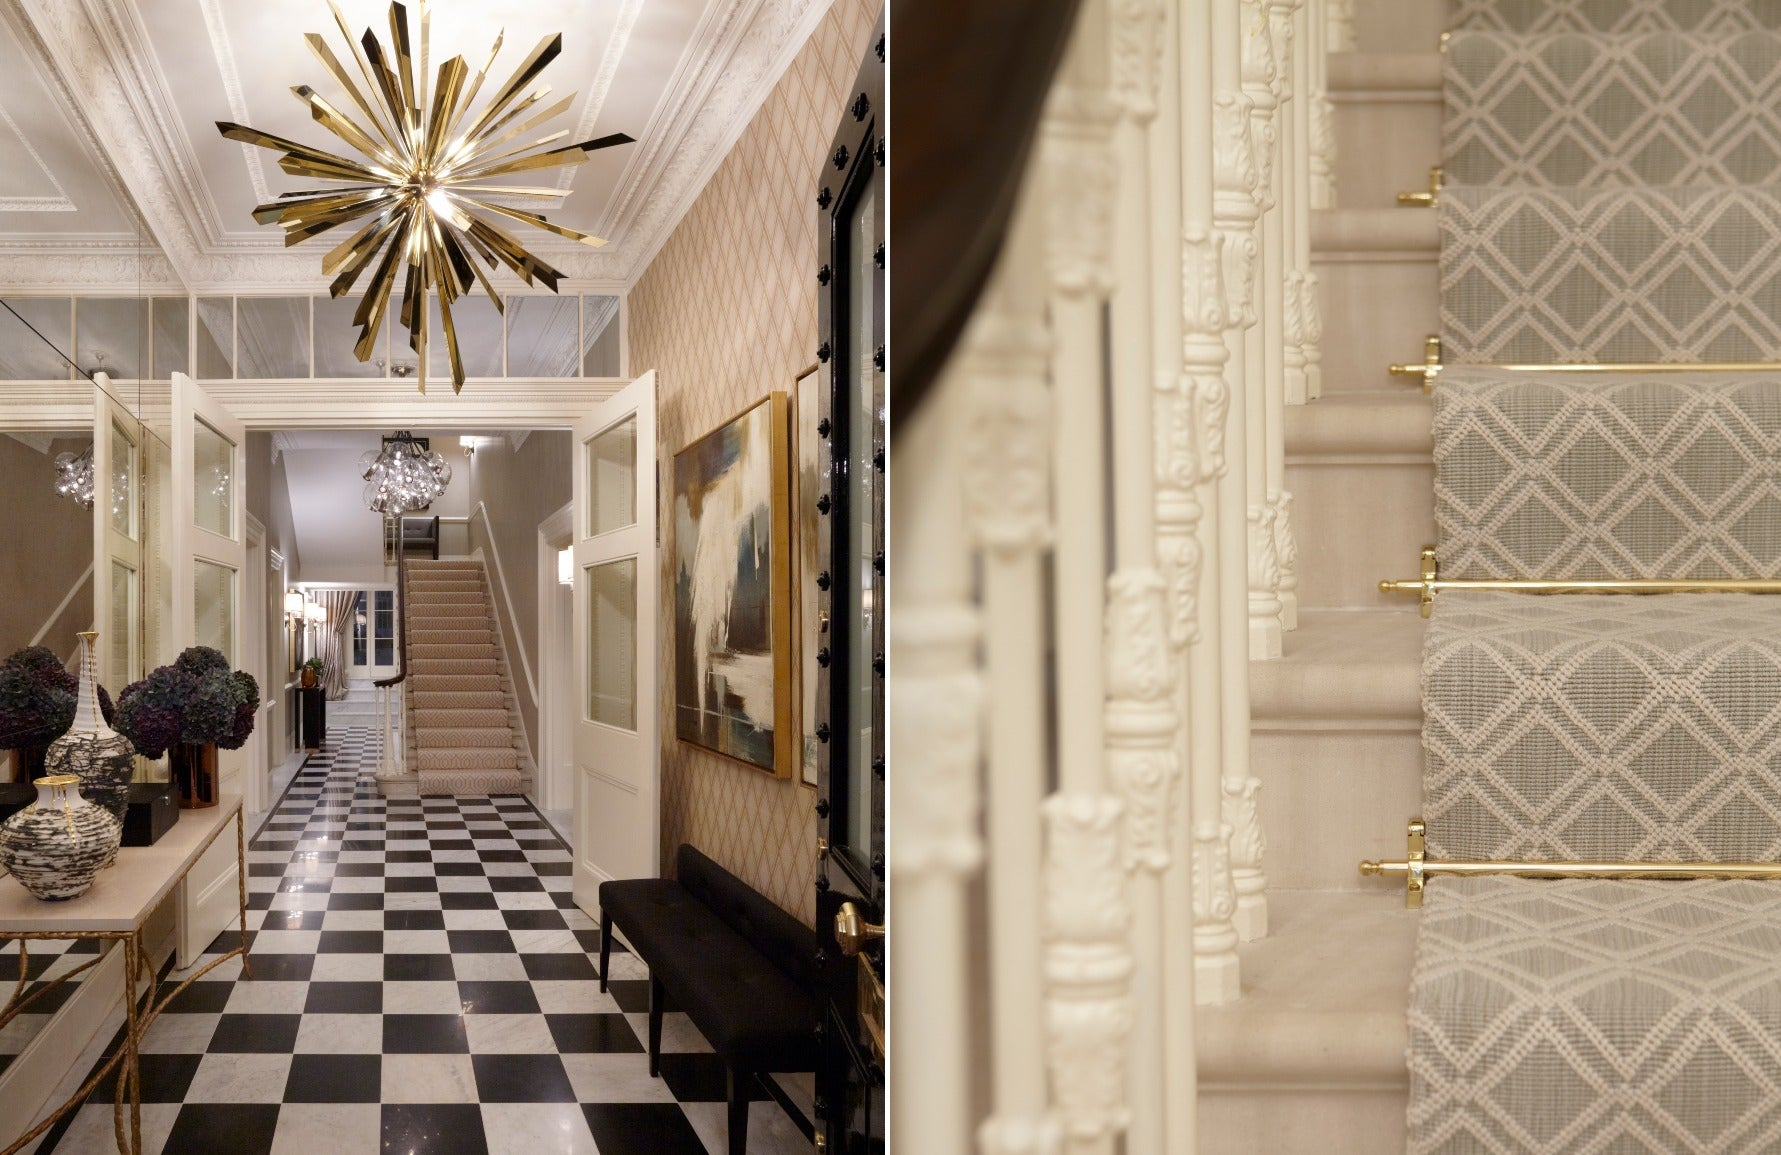 Forms of Geometric Shapes & Patterns In Interior Design   Squares   Helen Green Design   LuxDeco.com Style Guide